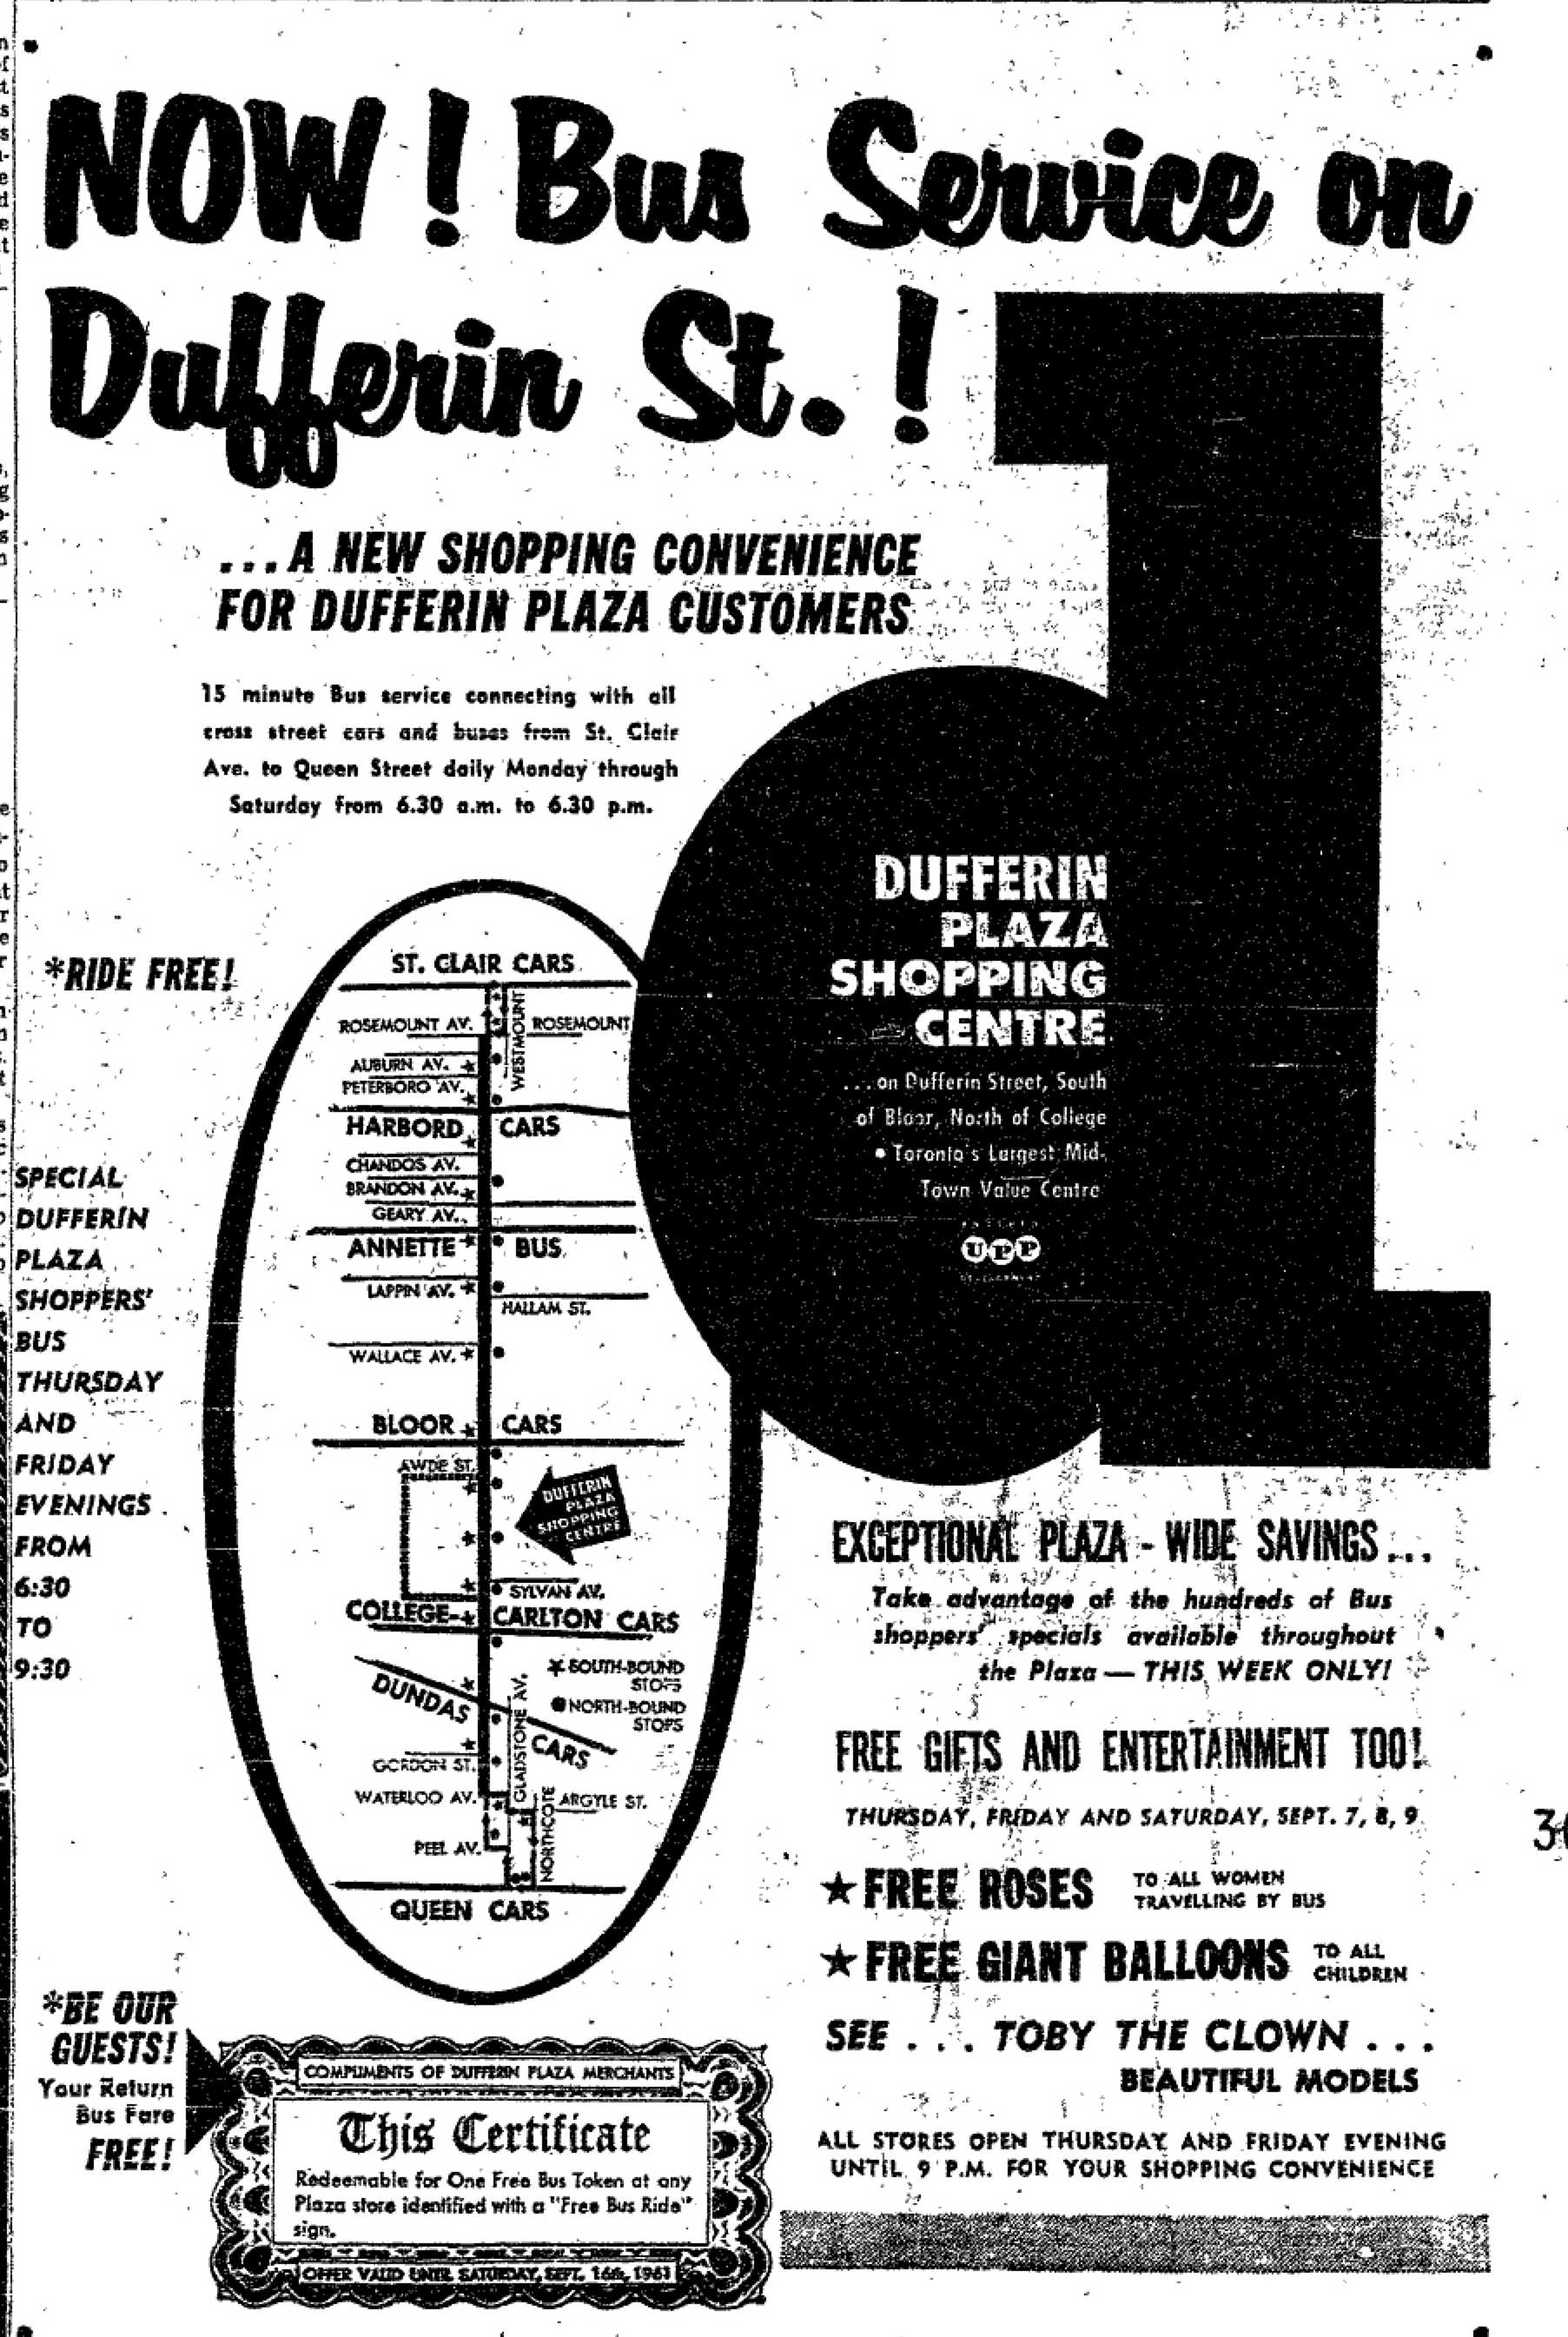 Dufferin Plaza advertisement, 1961